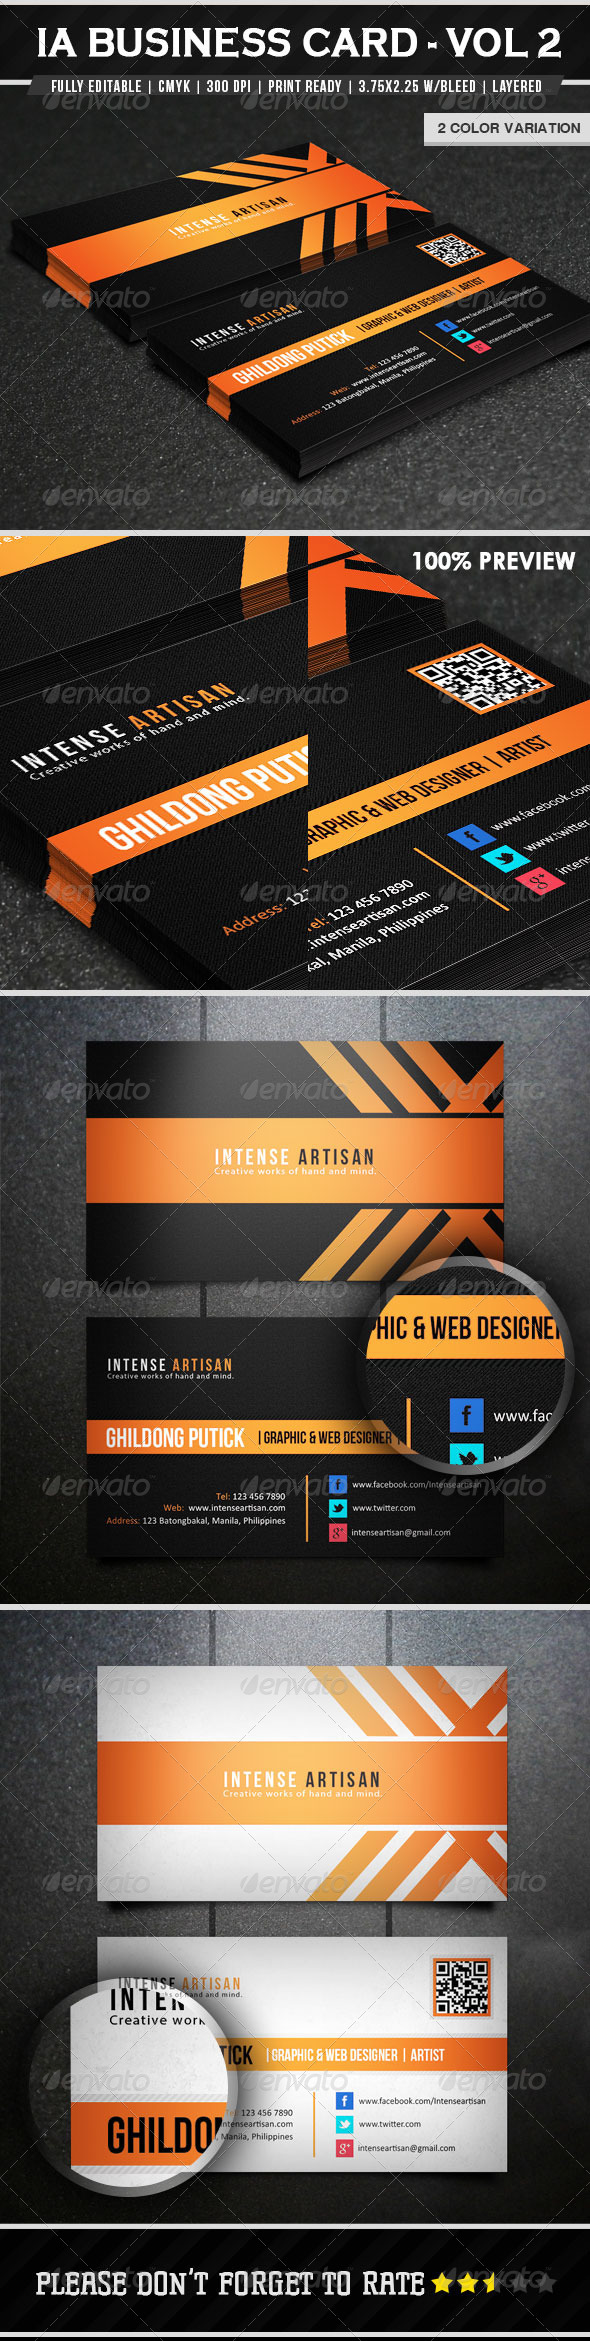 Intense Artisan Business Card - Vol 1 - Corporate Business Cards